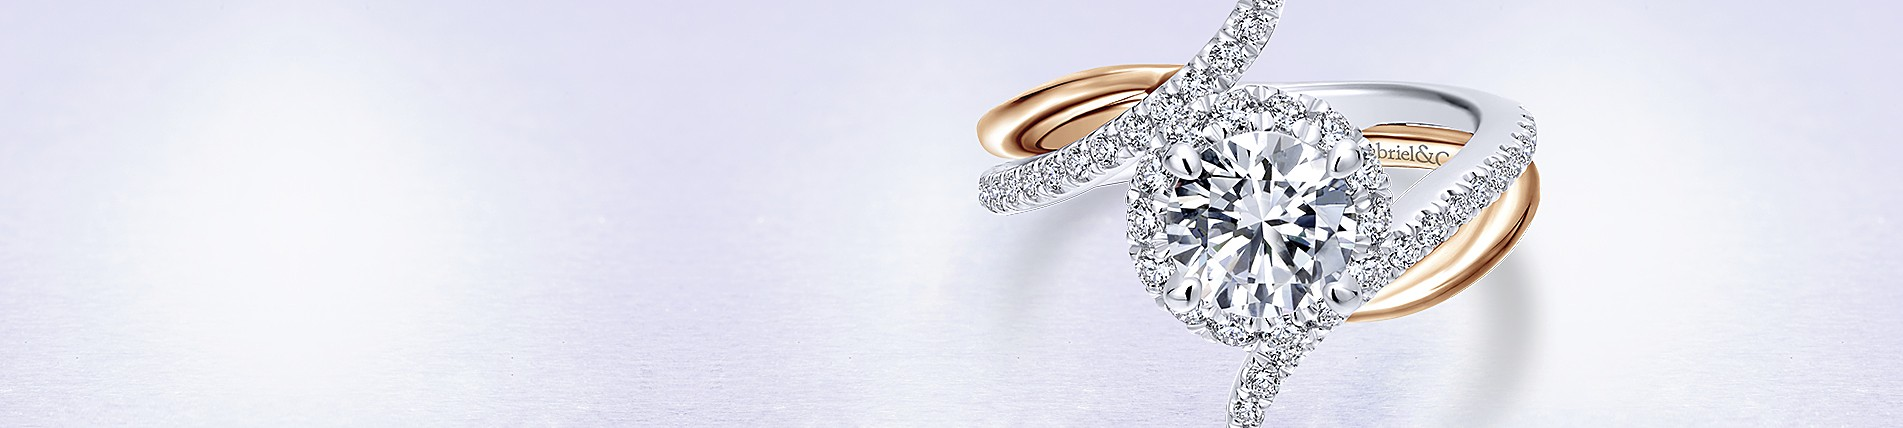 diamond rings wedding and gem contemporary esfhwwy promise engagement